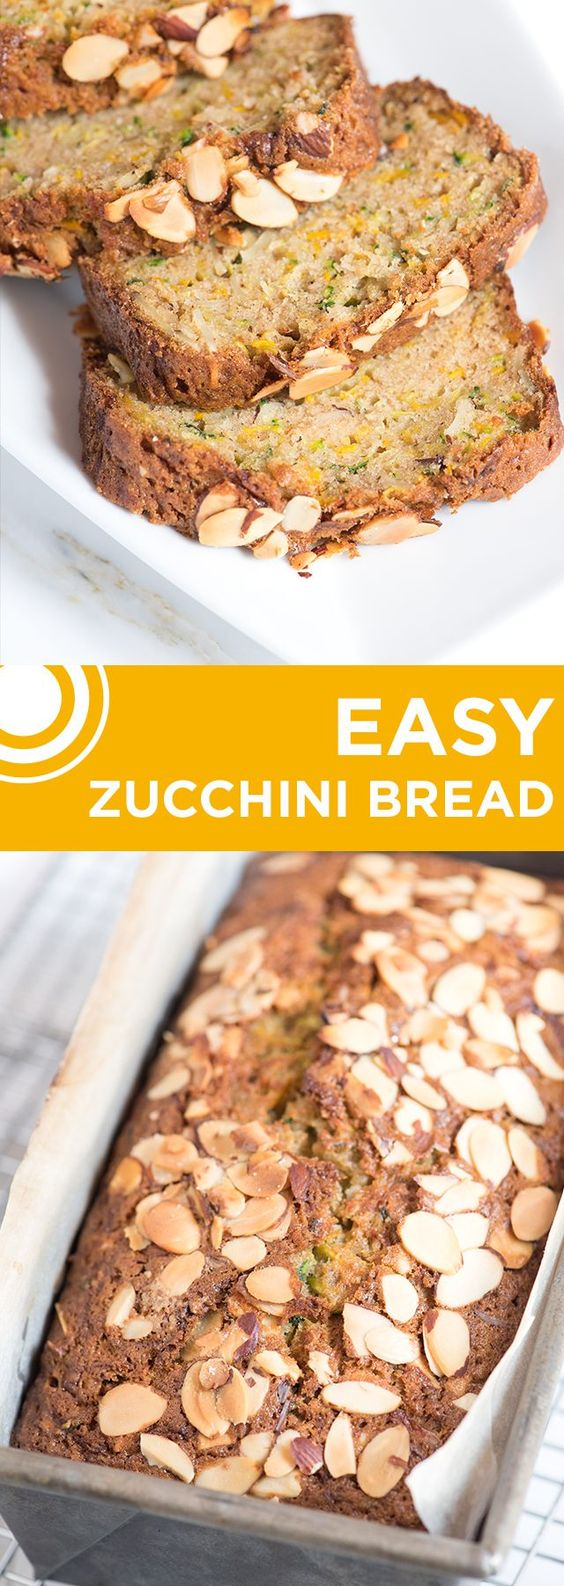 Easy Zucchini Bread Recipe with Almonds - A lightly spiced, perfectly sweetened batter with a whole pound of grated zucchini mixed in.